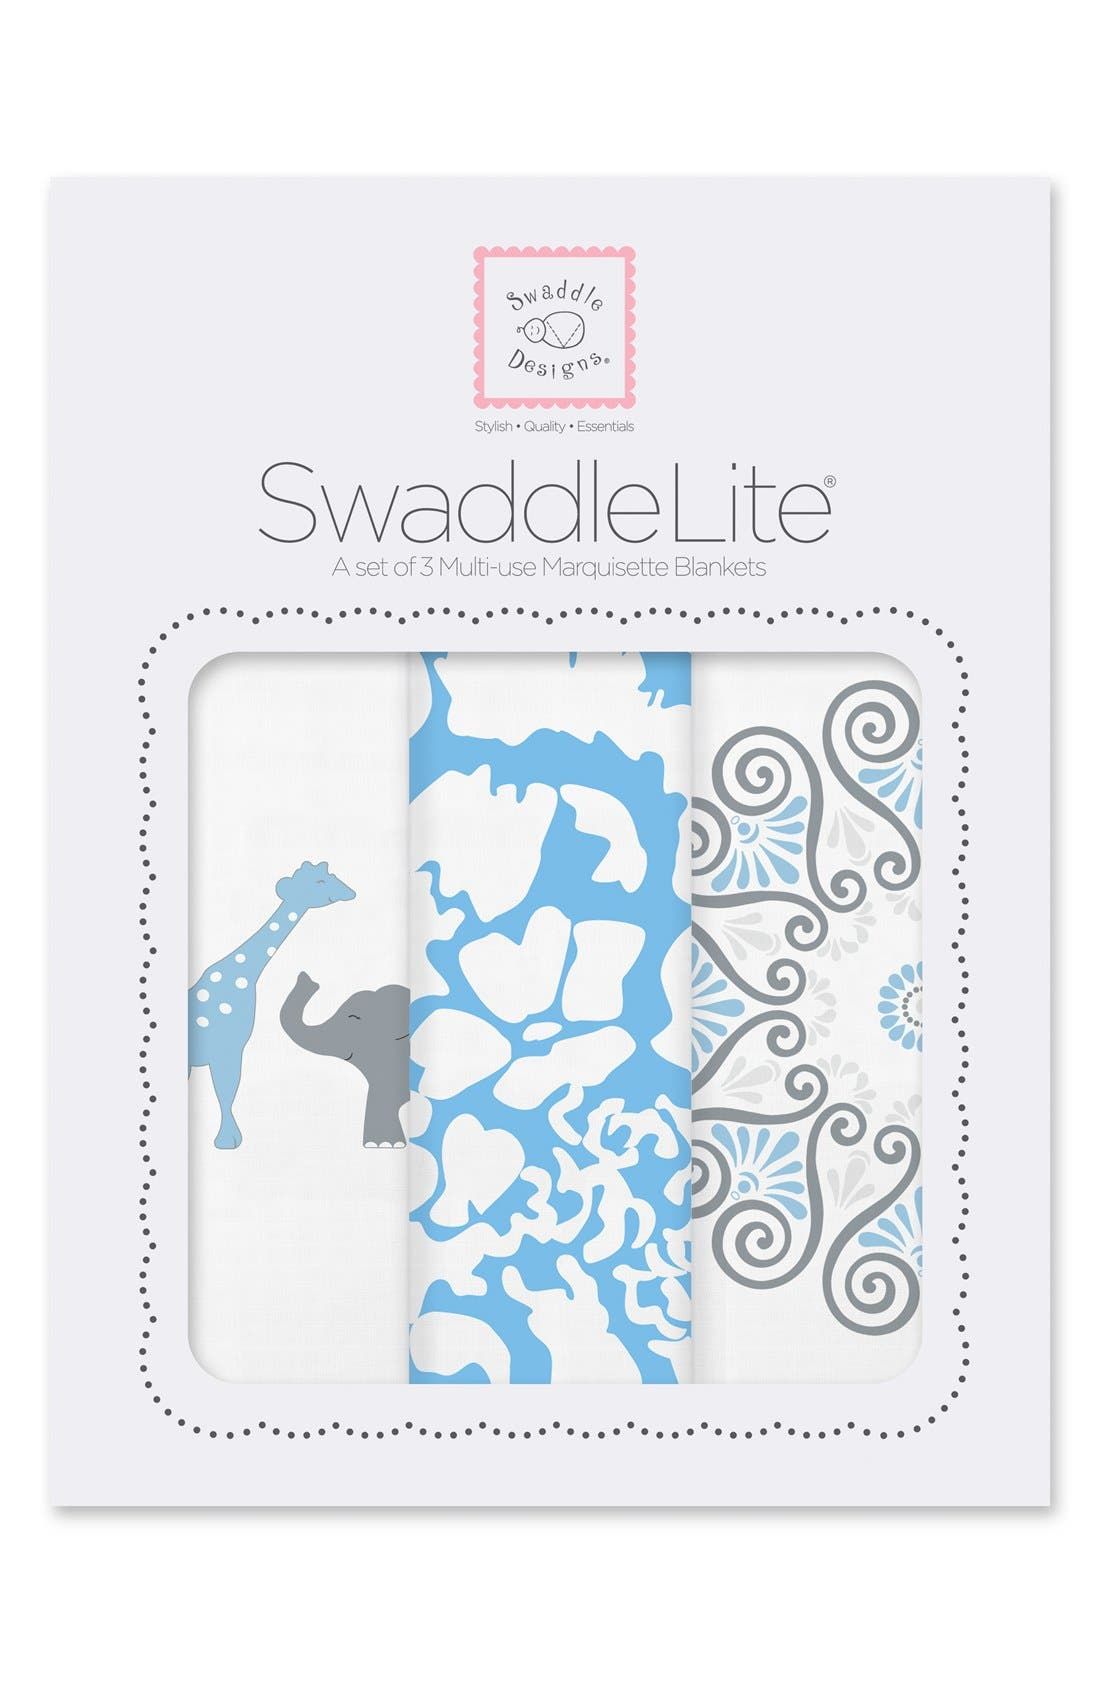 Alternate Image 1 Selected - Swaddle Designs 'Swaddle Lite - Lush' Marquisette Blanket (Set of 3)